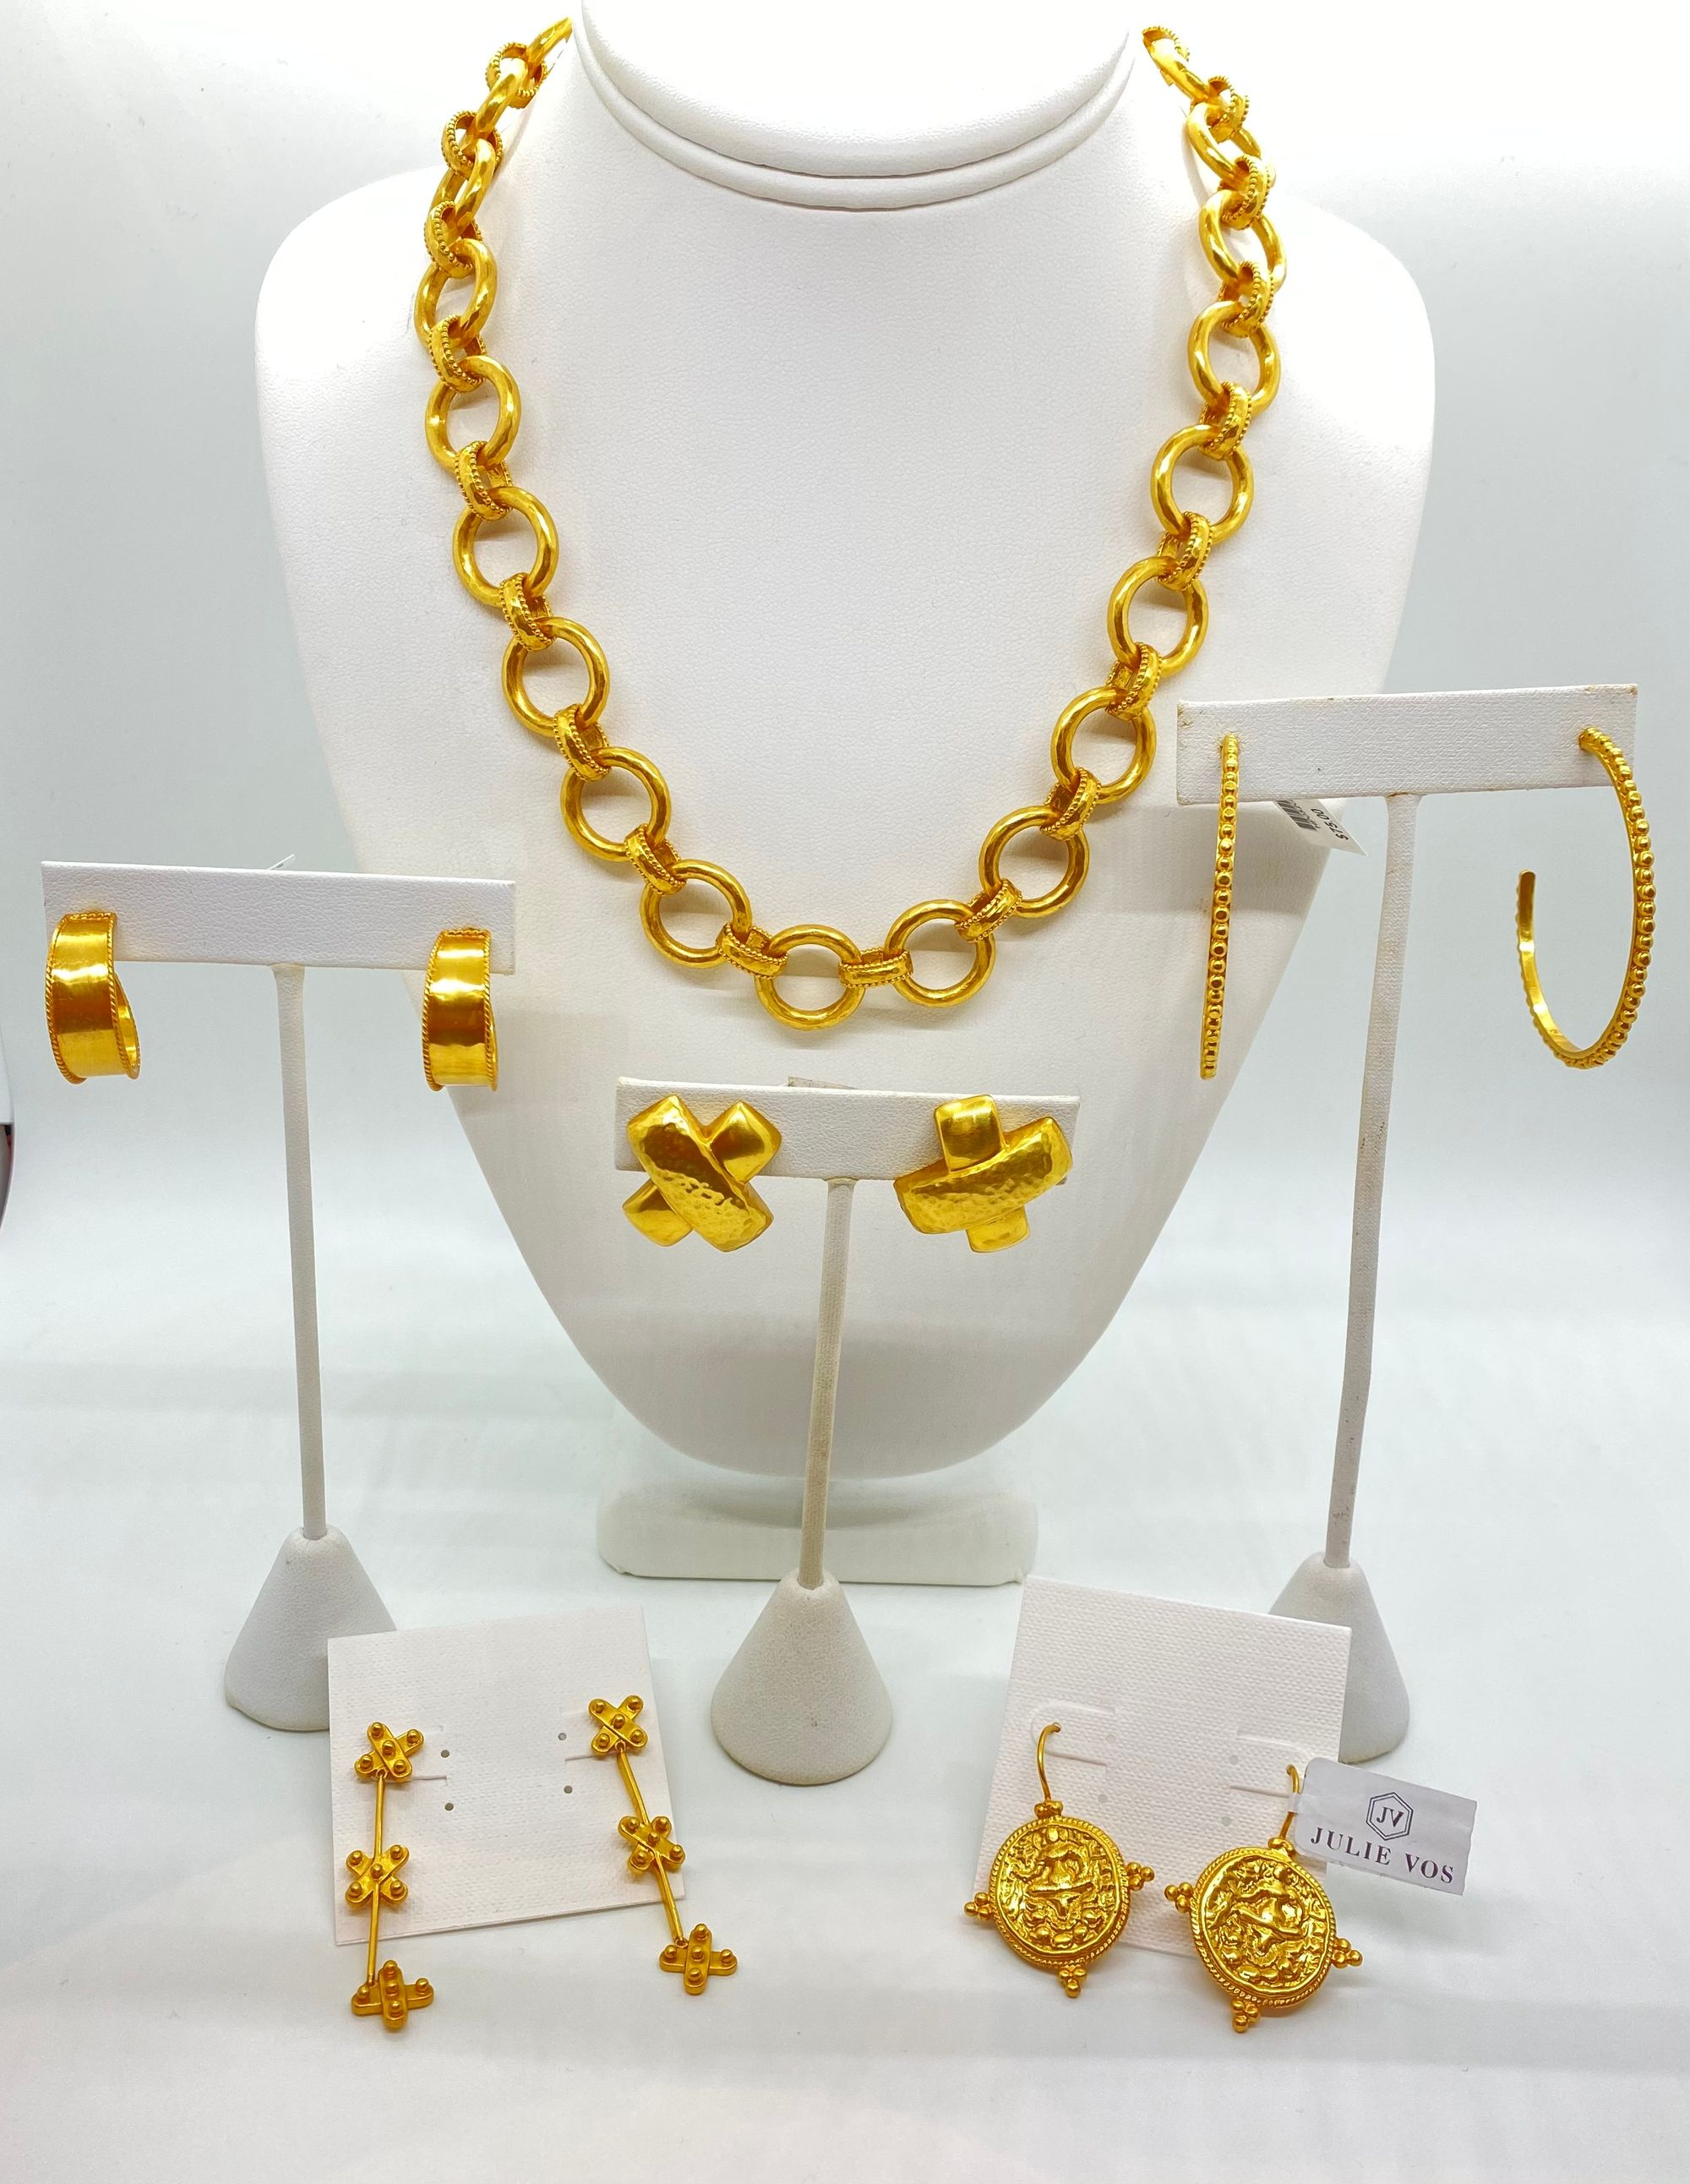 Julie Vos Gold Collection